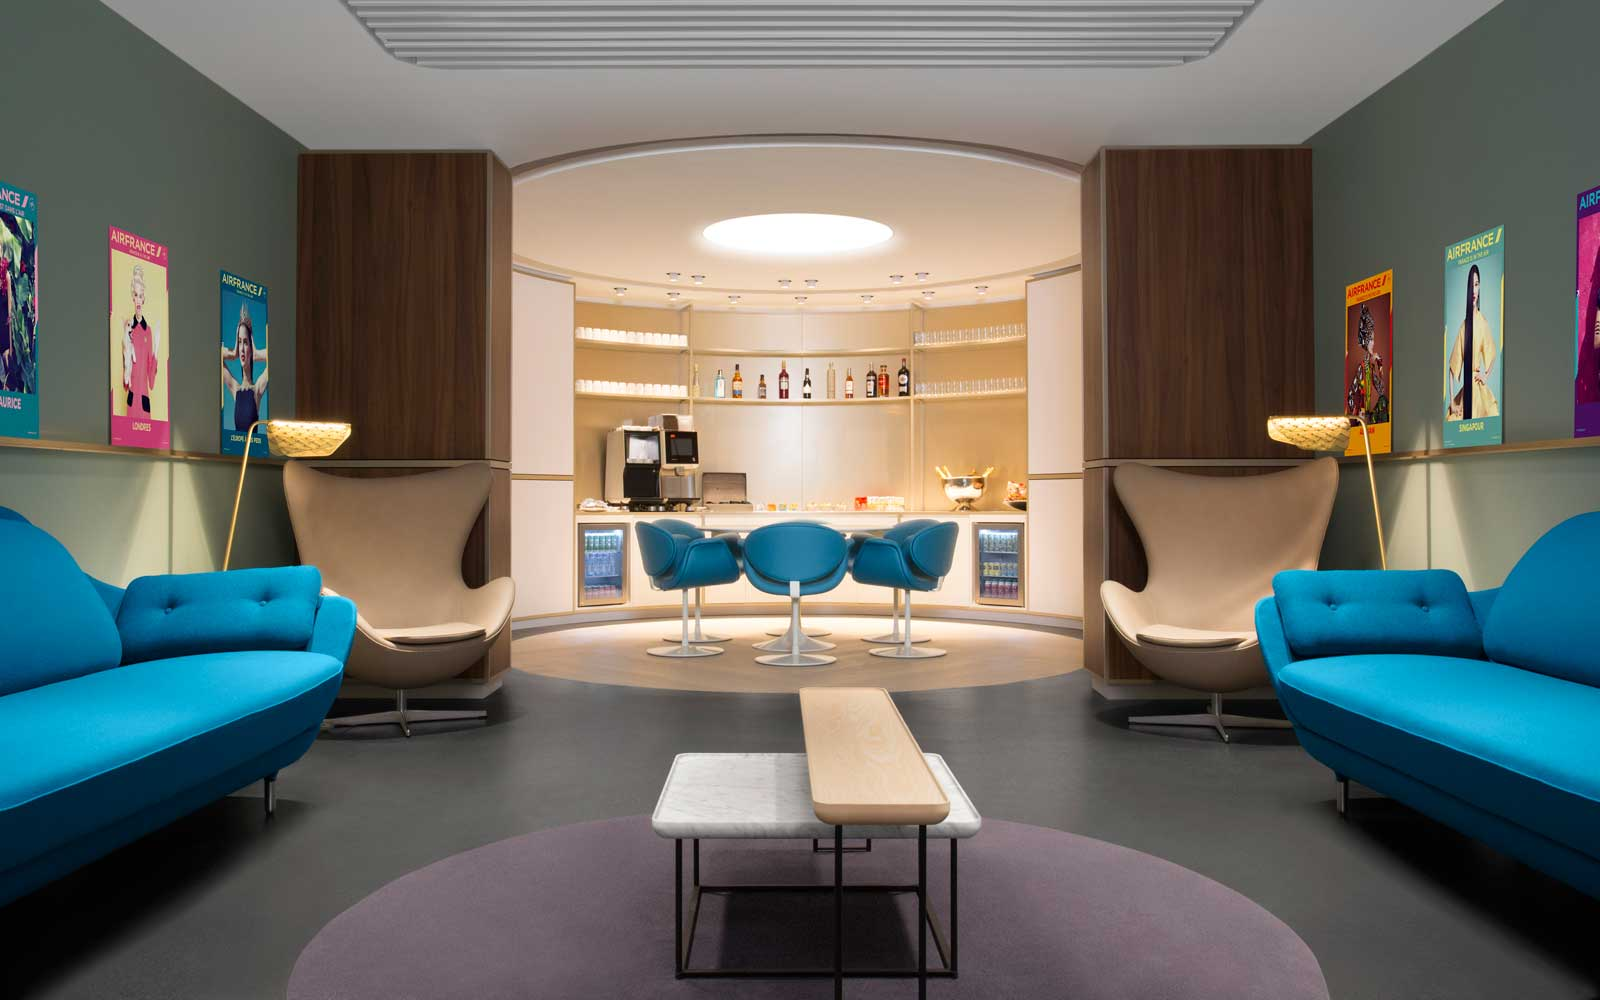 Air France's New Lounge Was Designed to Make You Feel Like You're Already Flying